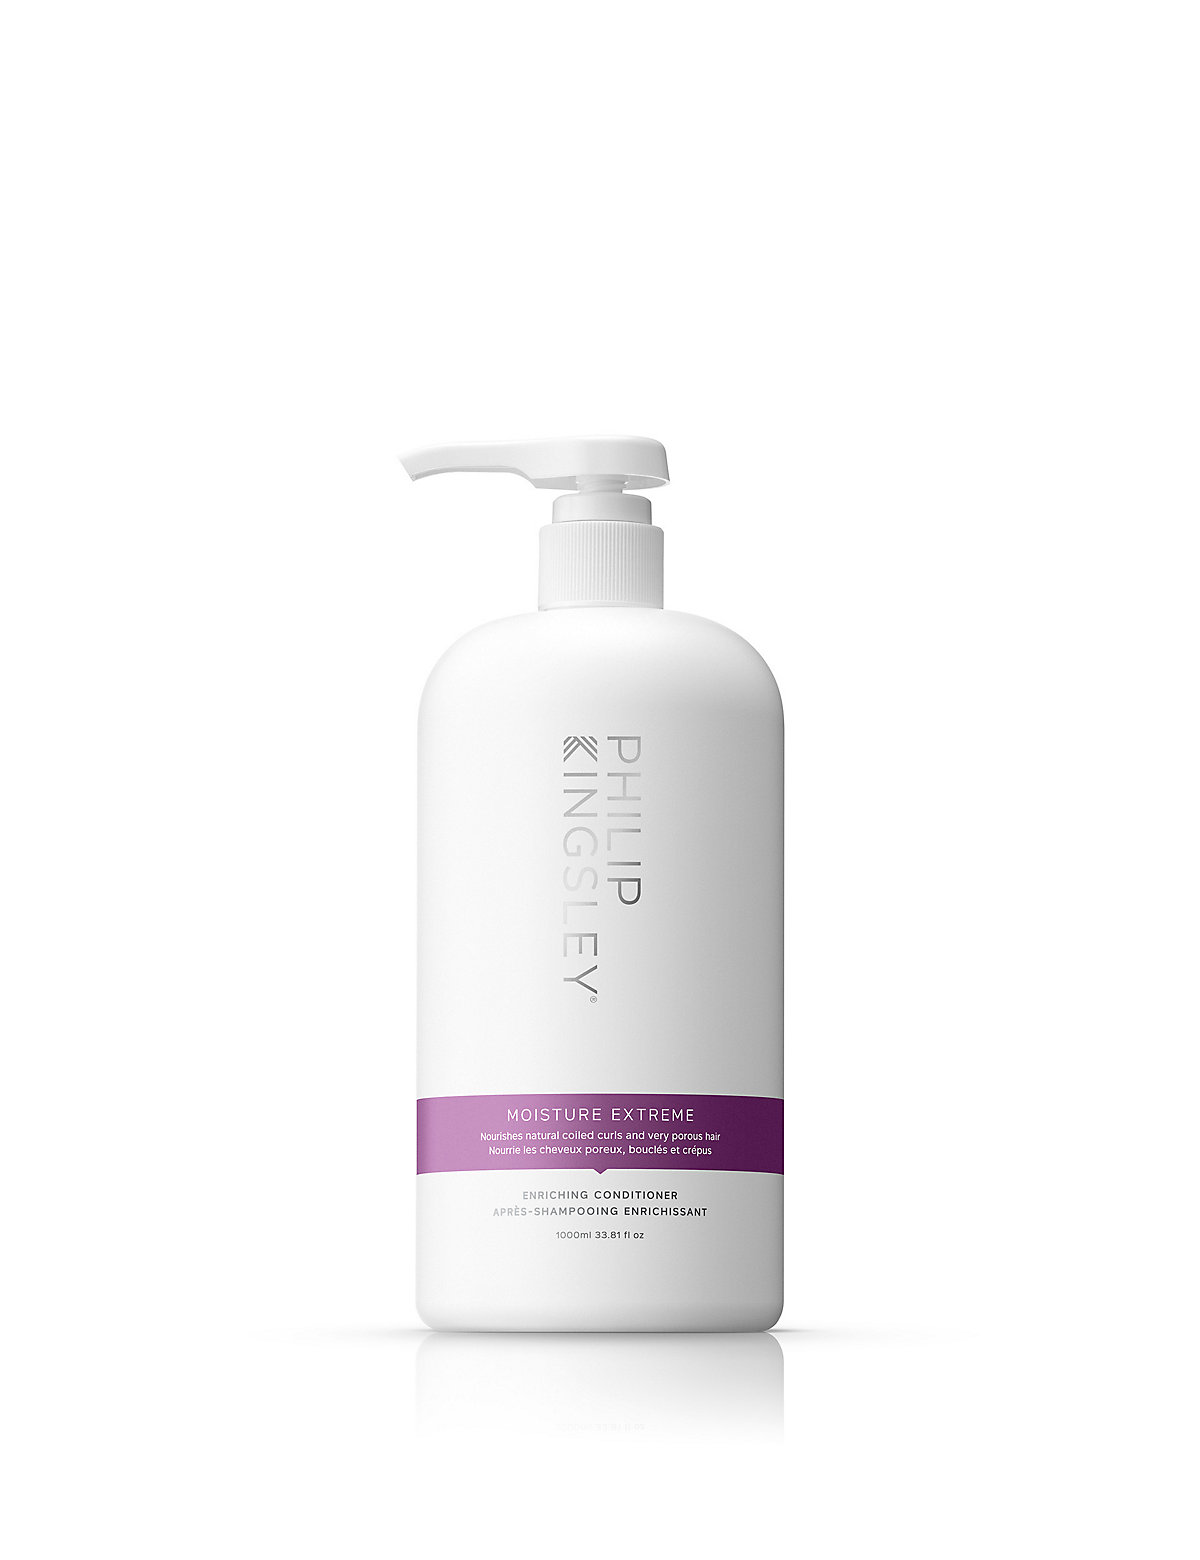 Philip Kingsley 1 Litre Moisture Extreme Conditioner - *Save 40% per ml